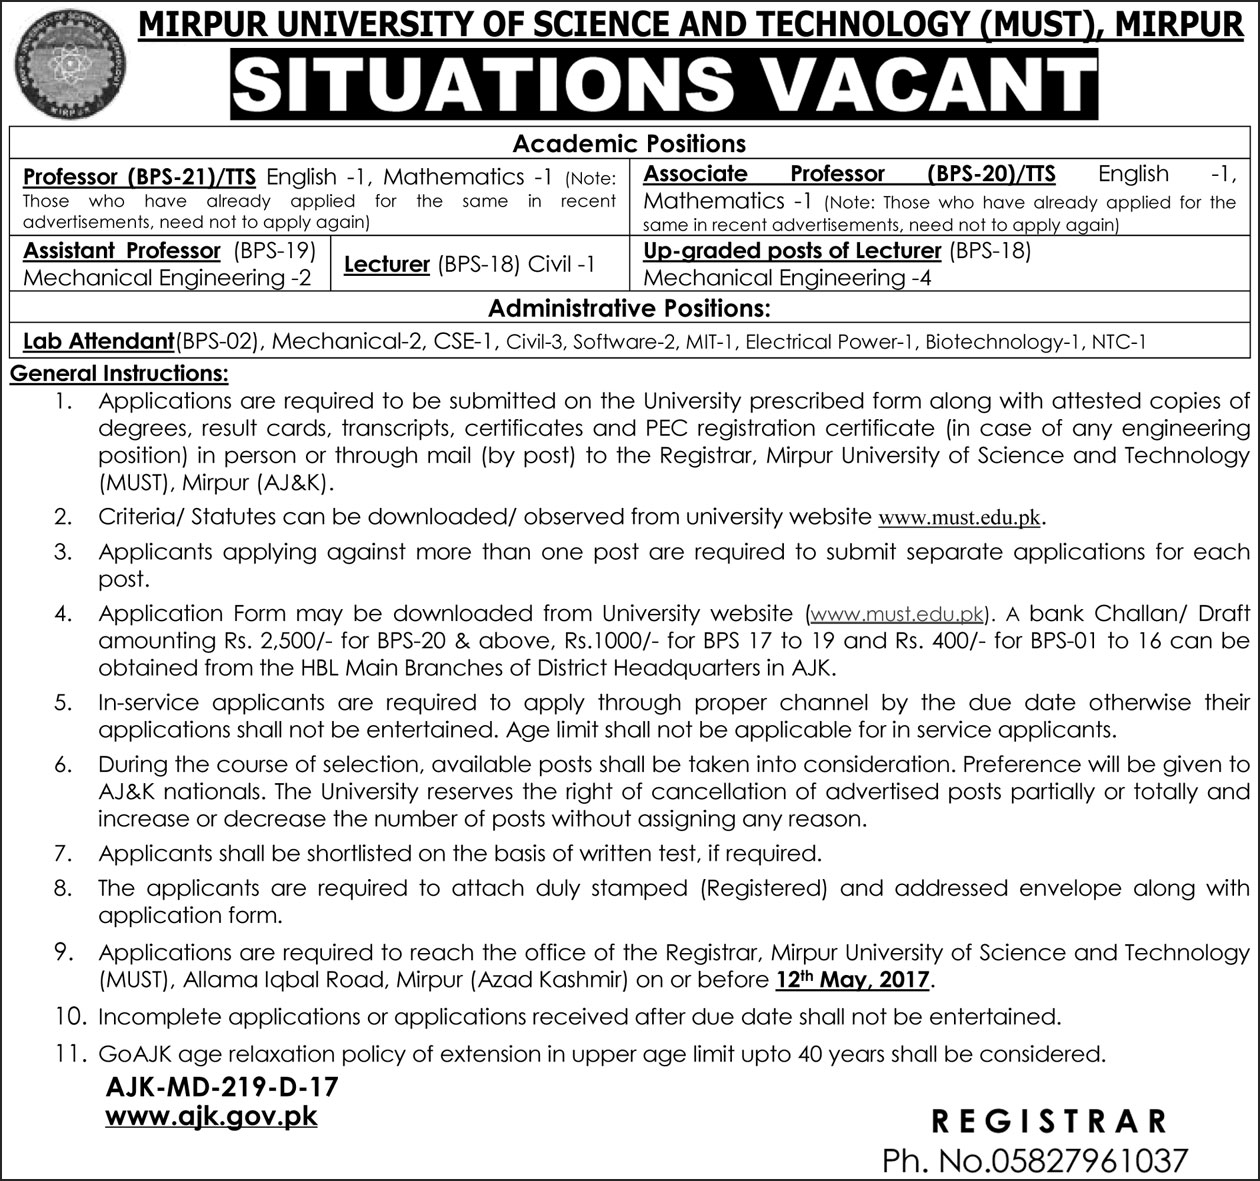 New Fab Lab Promotes Careers In Science Techology: Mirpur University Of Science & Technology MUST Jobs 2017